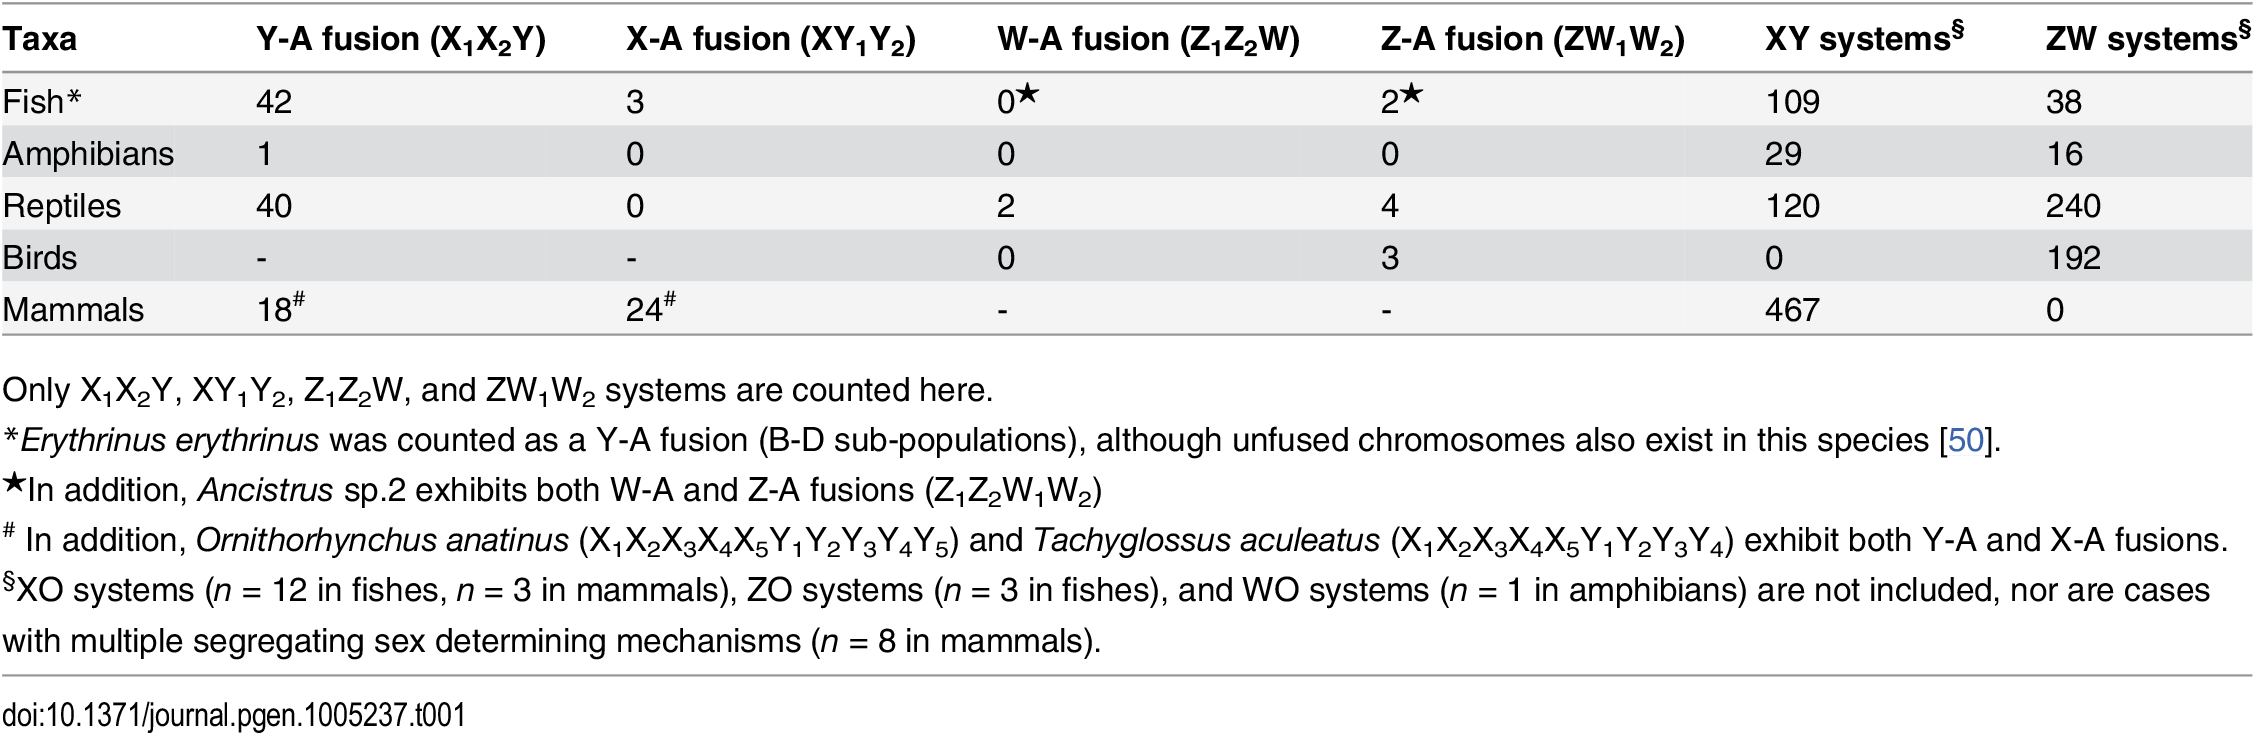 Observed number of species with multiple sex chromosome systems in vertebrates.